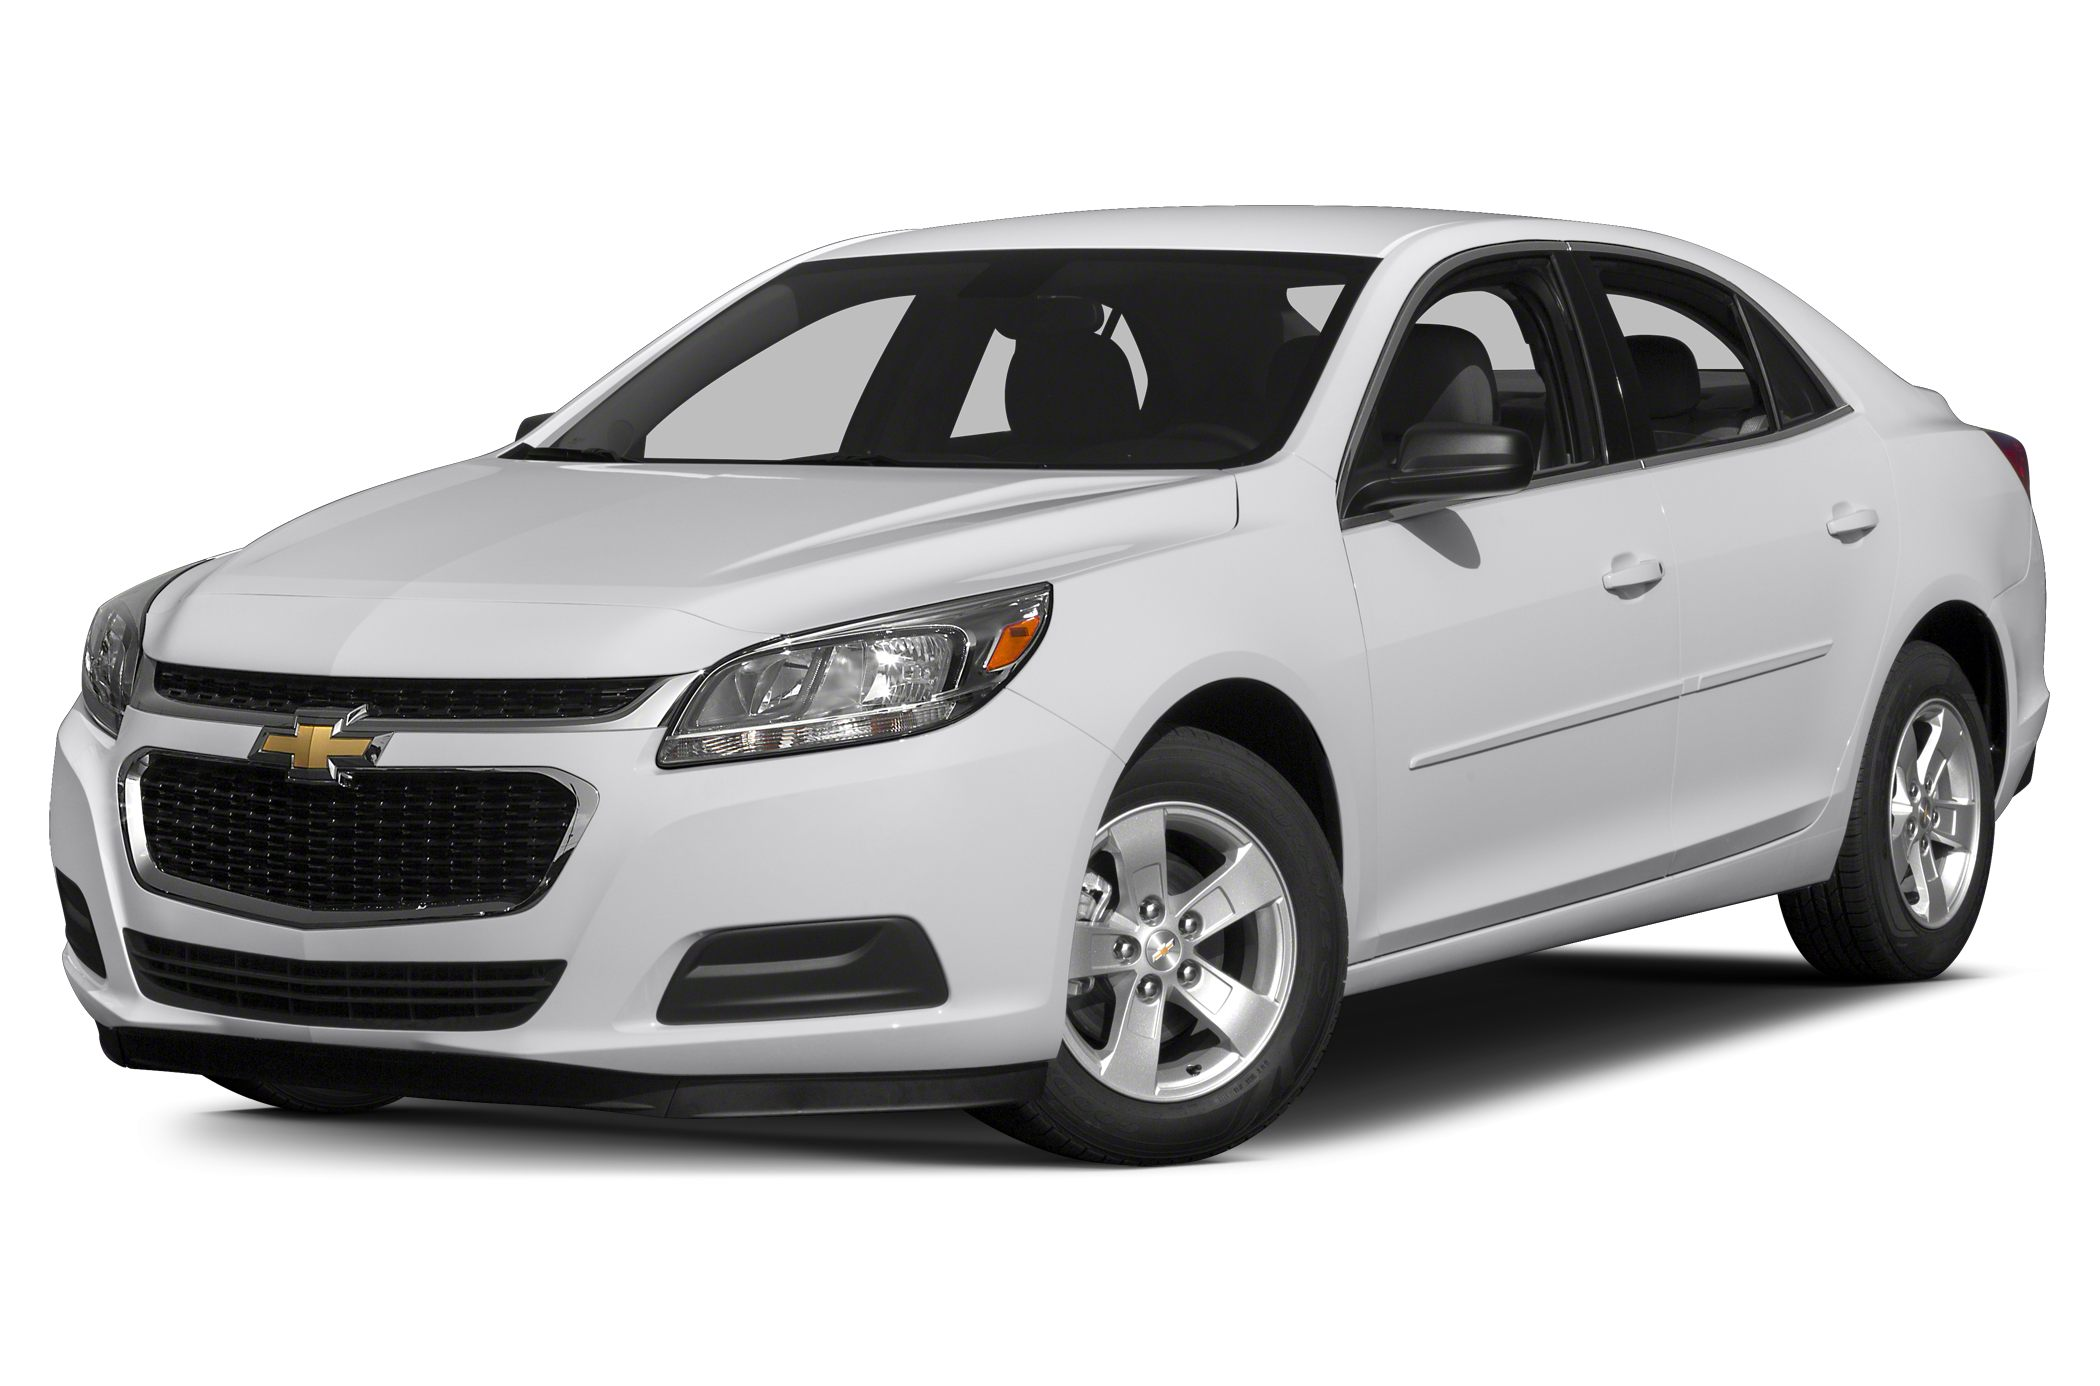 2015 Chevrolet Malibu 1LT Sedan for sale in Tahlequah for $26,000 with 4,170 miles